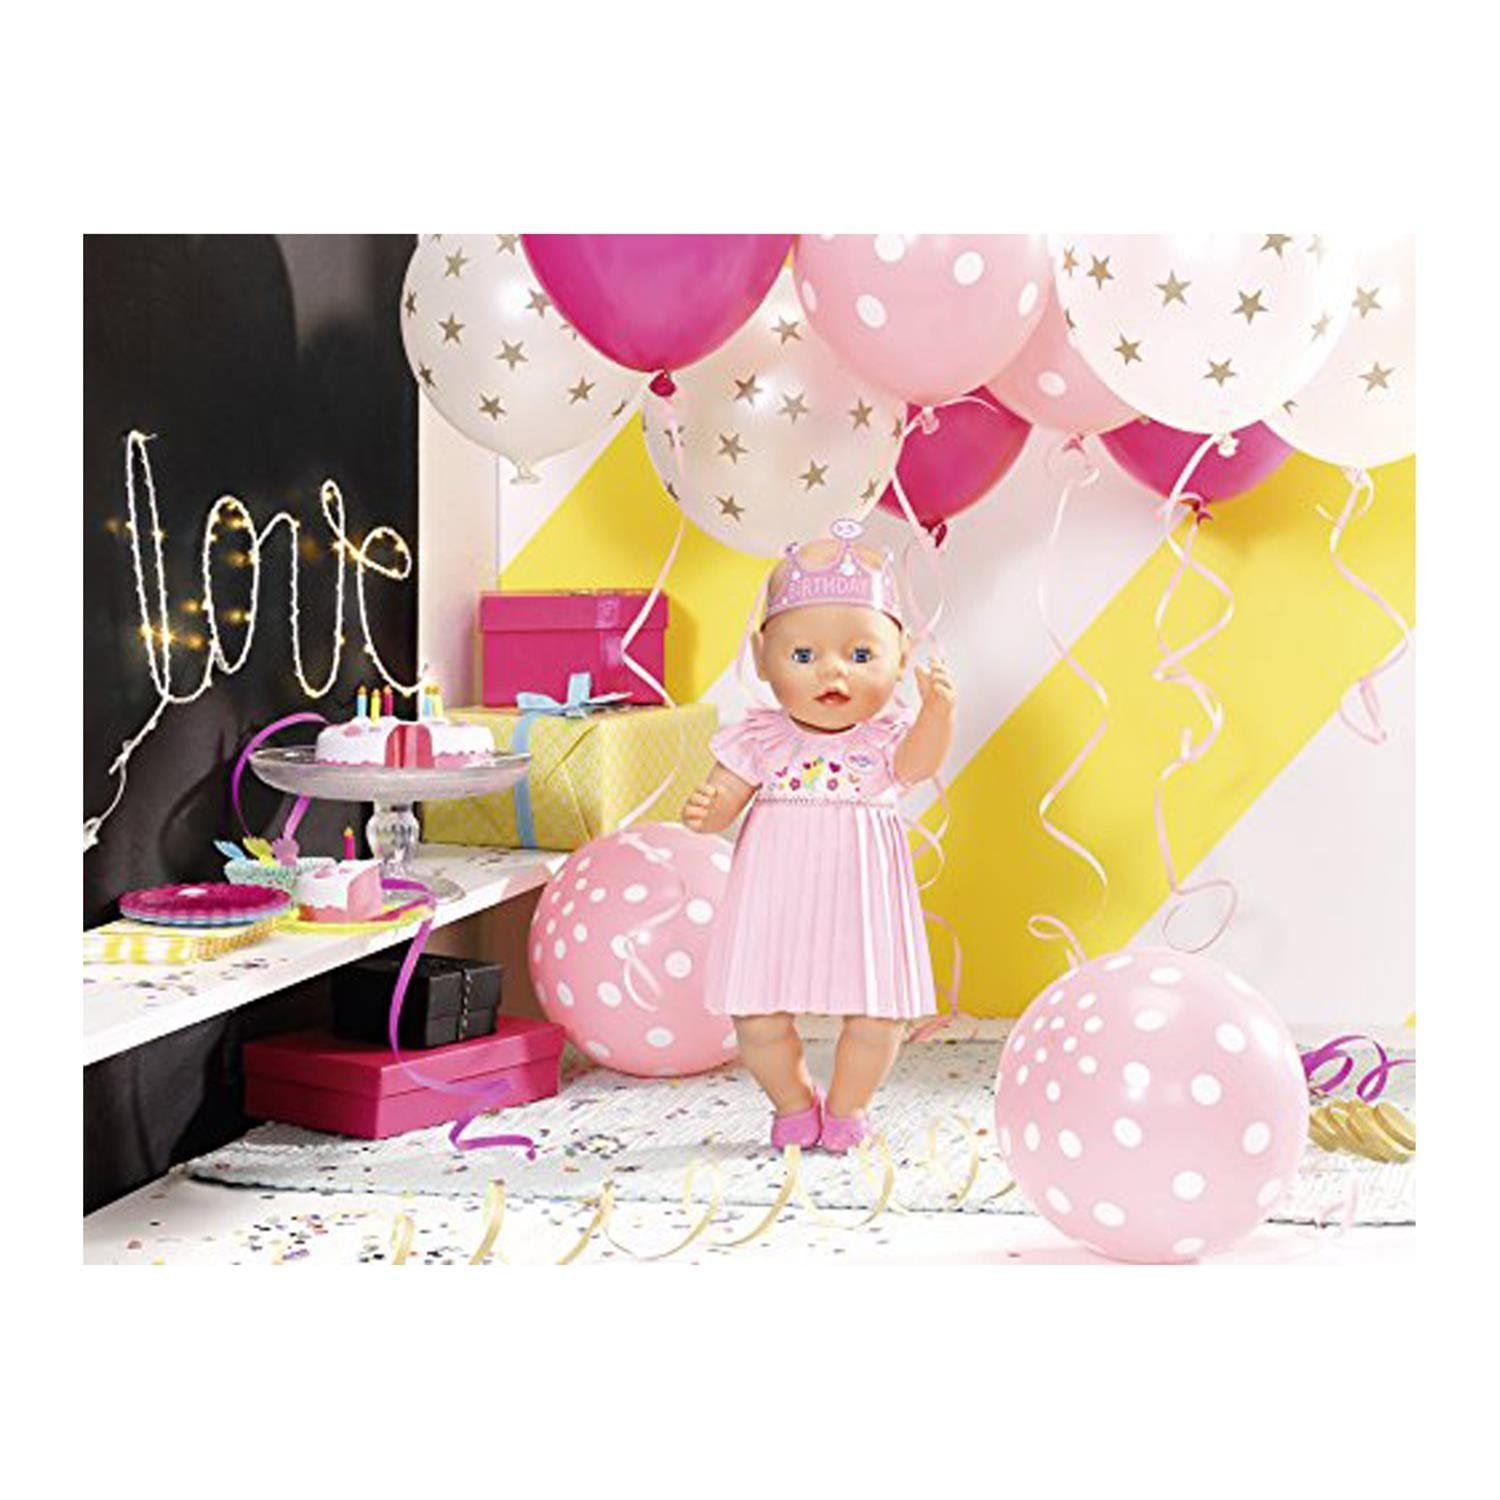 Details about Zapf Creation Baby born Interactive Happy birthday Playset Realistic Function